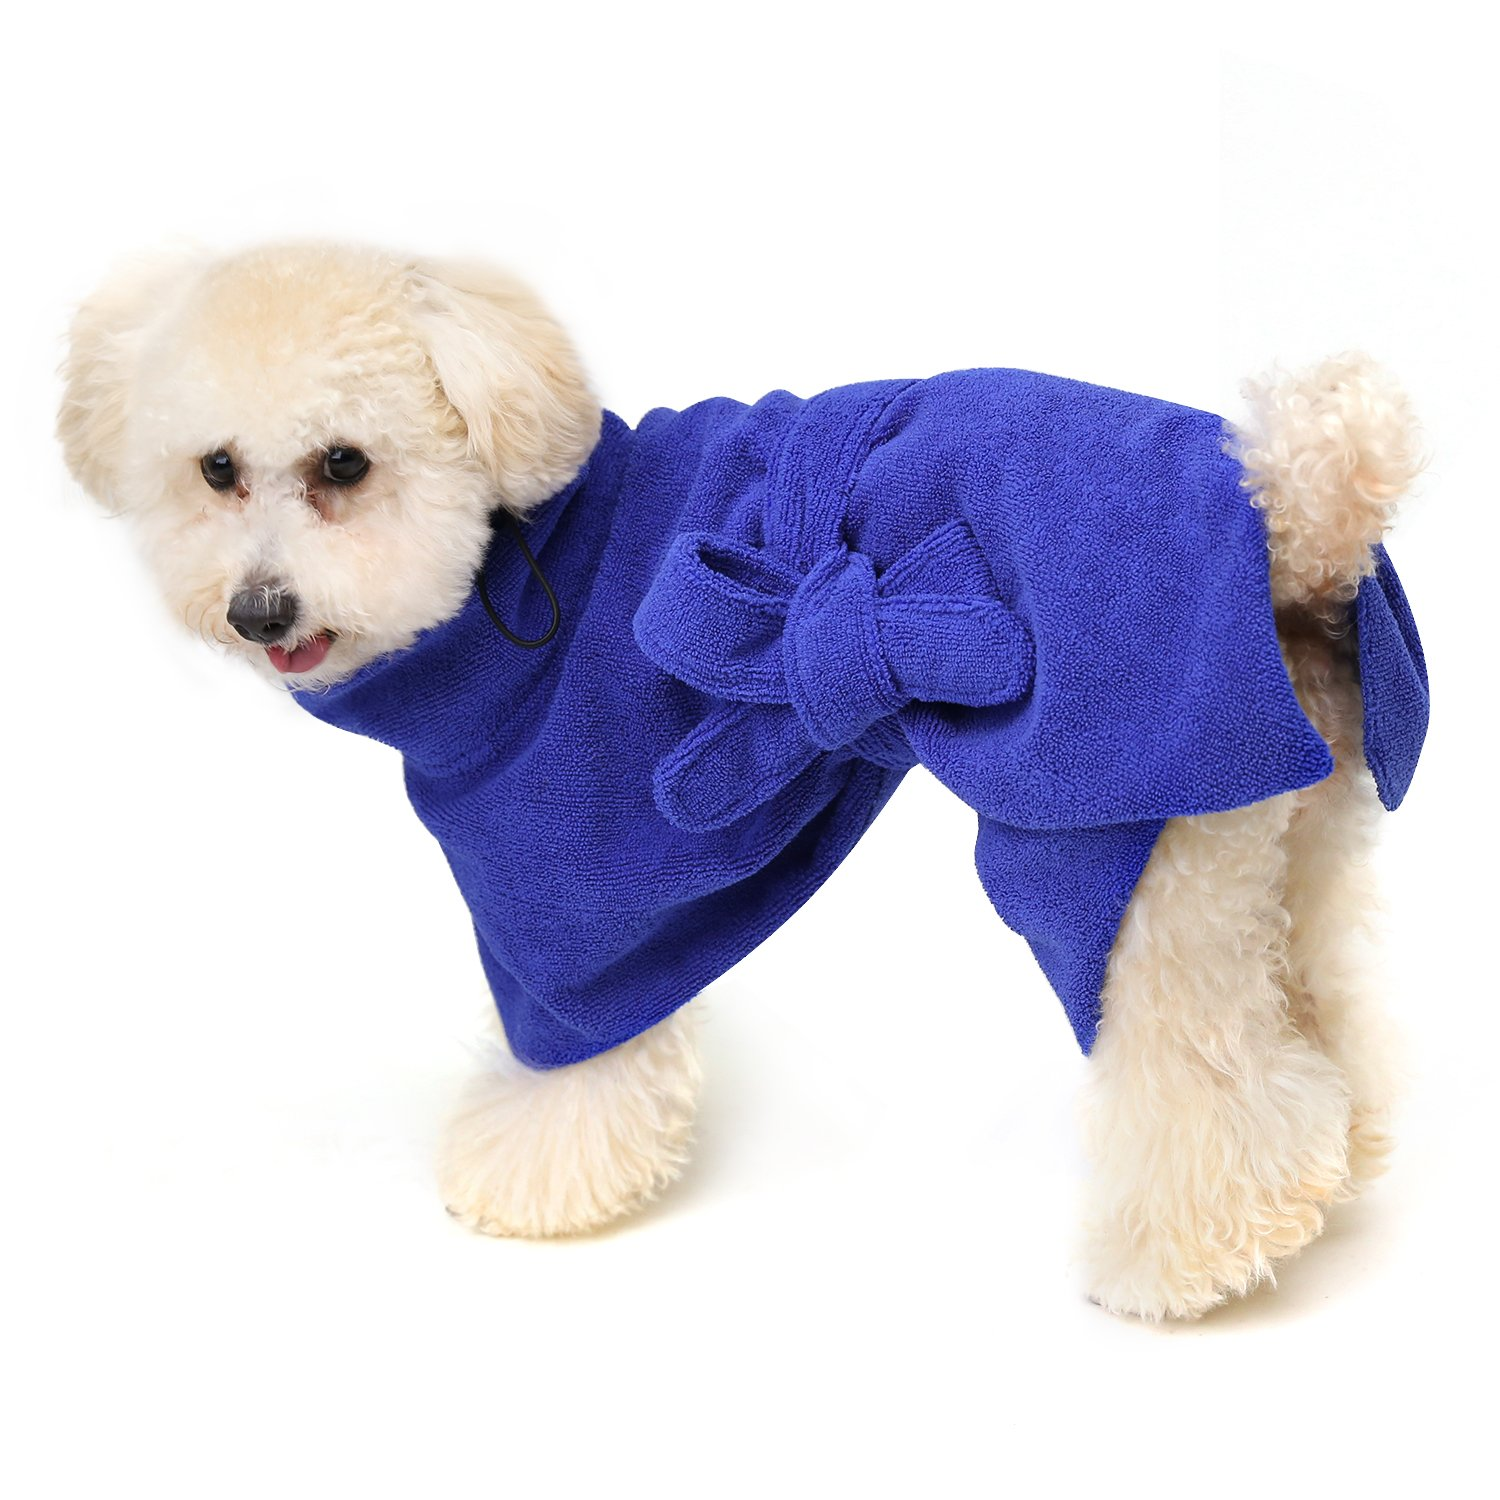 Pawaboo Dog Bathrobe, Quick Drying Dog Towel Dogs and Cats Microfiber Towel Super Obsorbent Pets Bath Towel for Mositure Absorbing, Small Size, Blue